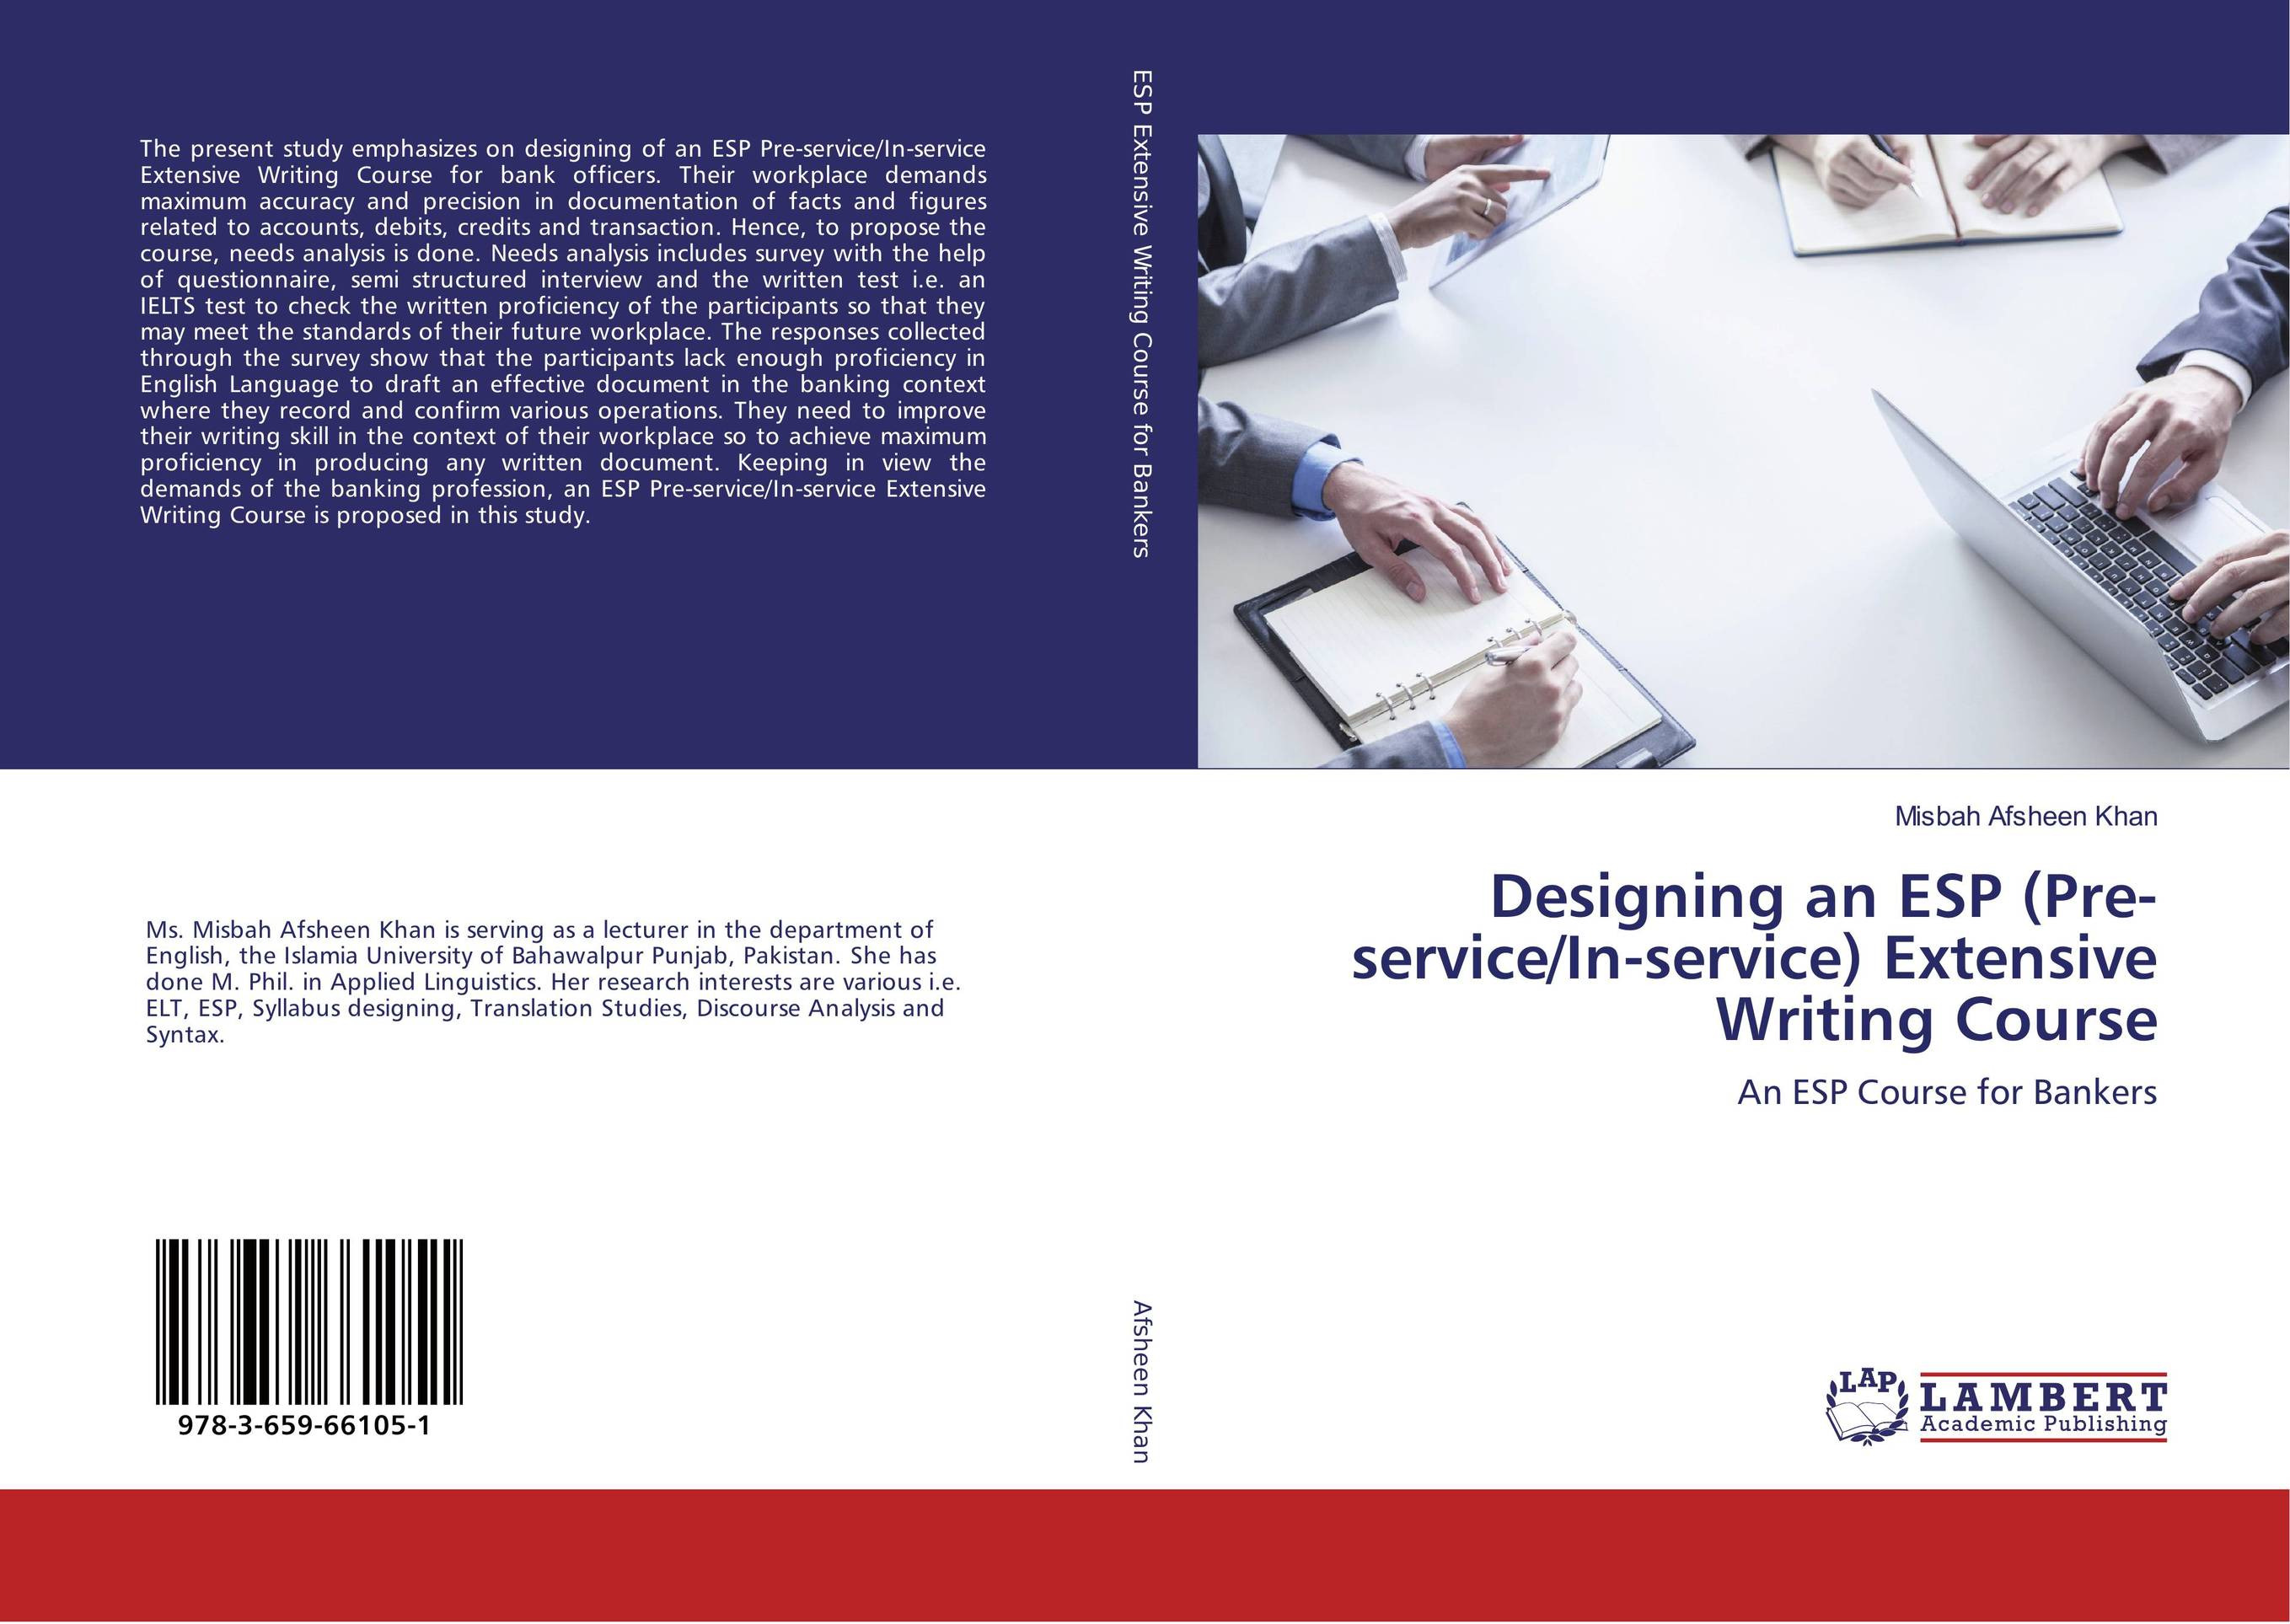 Designing an ESP (Pre-service/In-service) Extensive Writing Course галогенная лампа donar dn 38741 30 3v 200w ezl 02